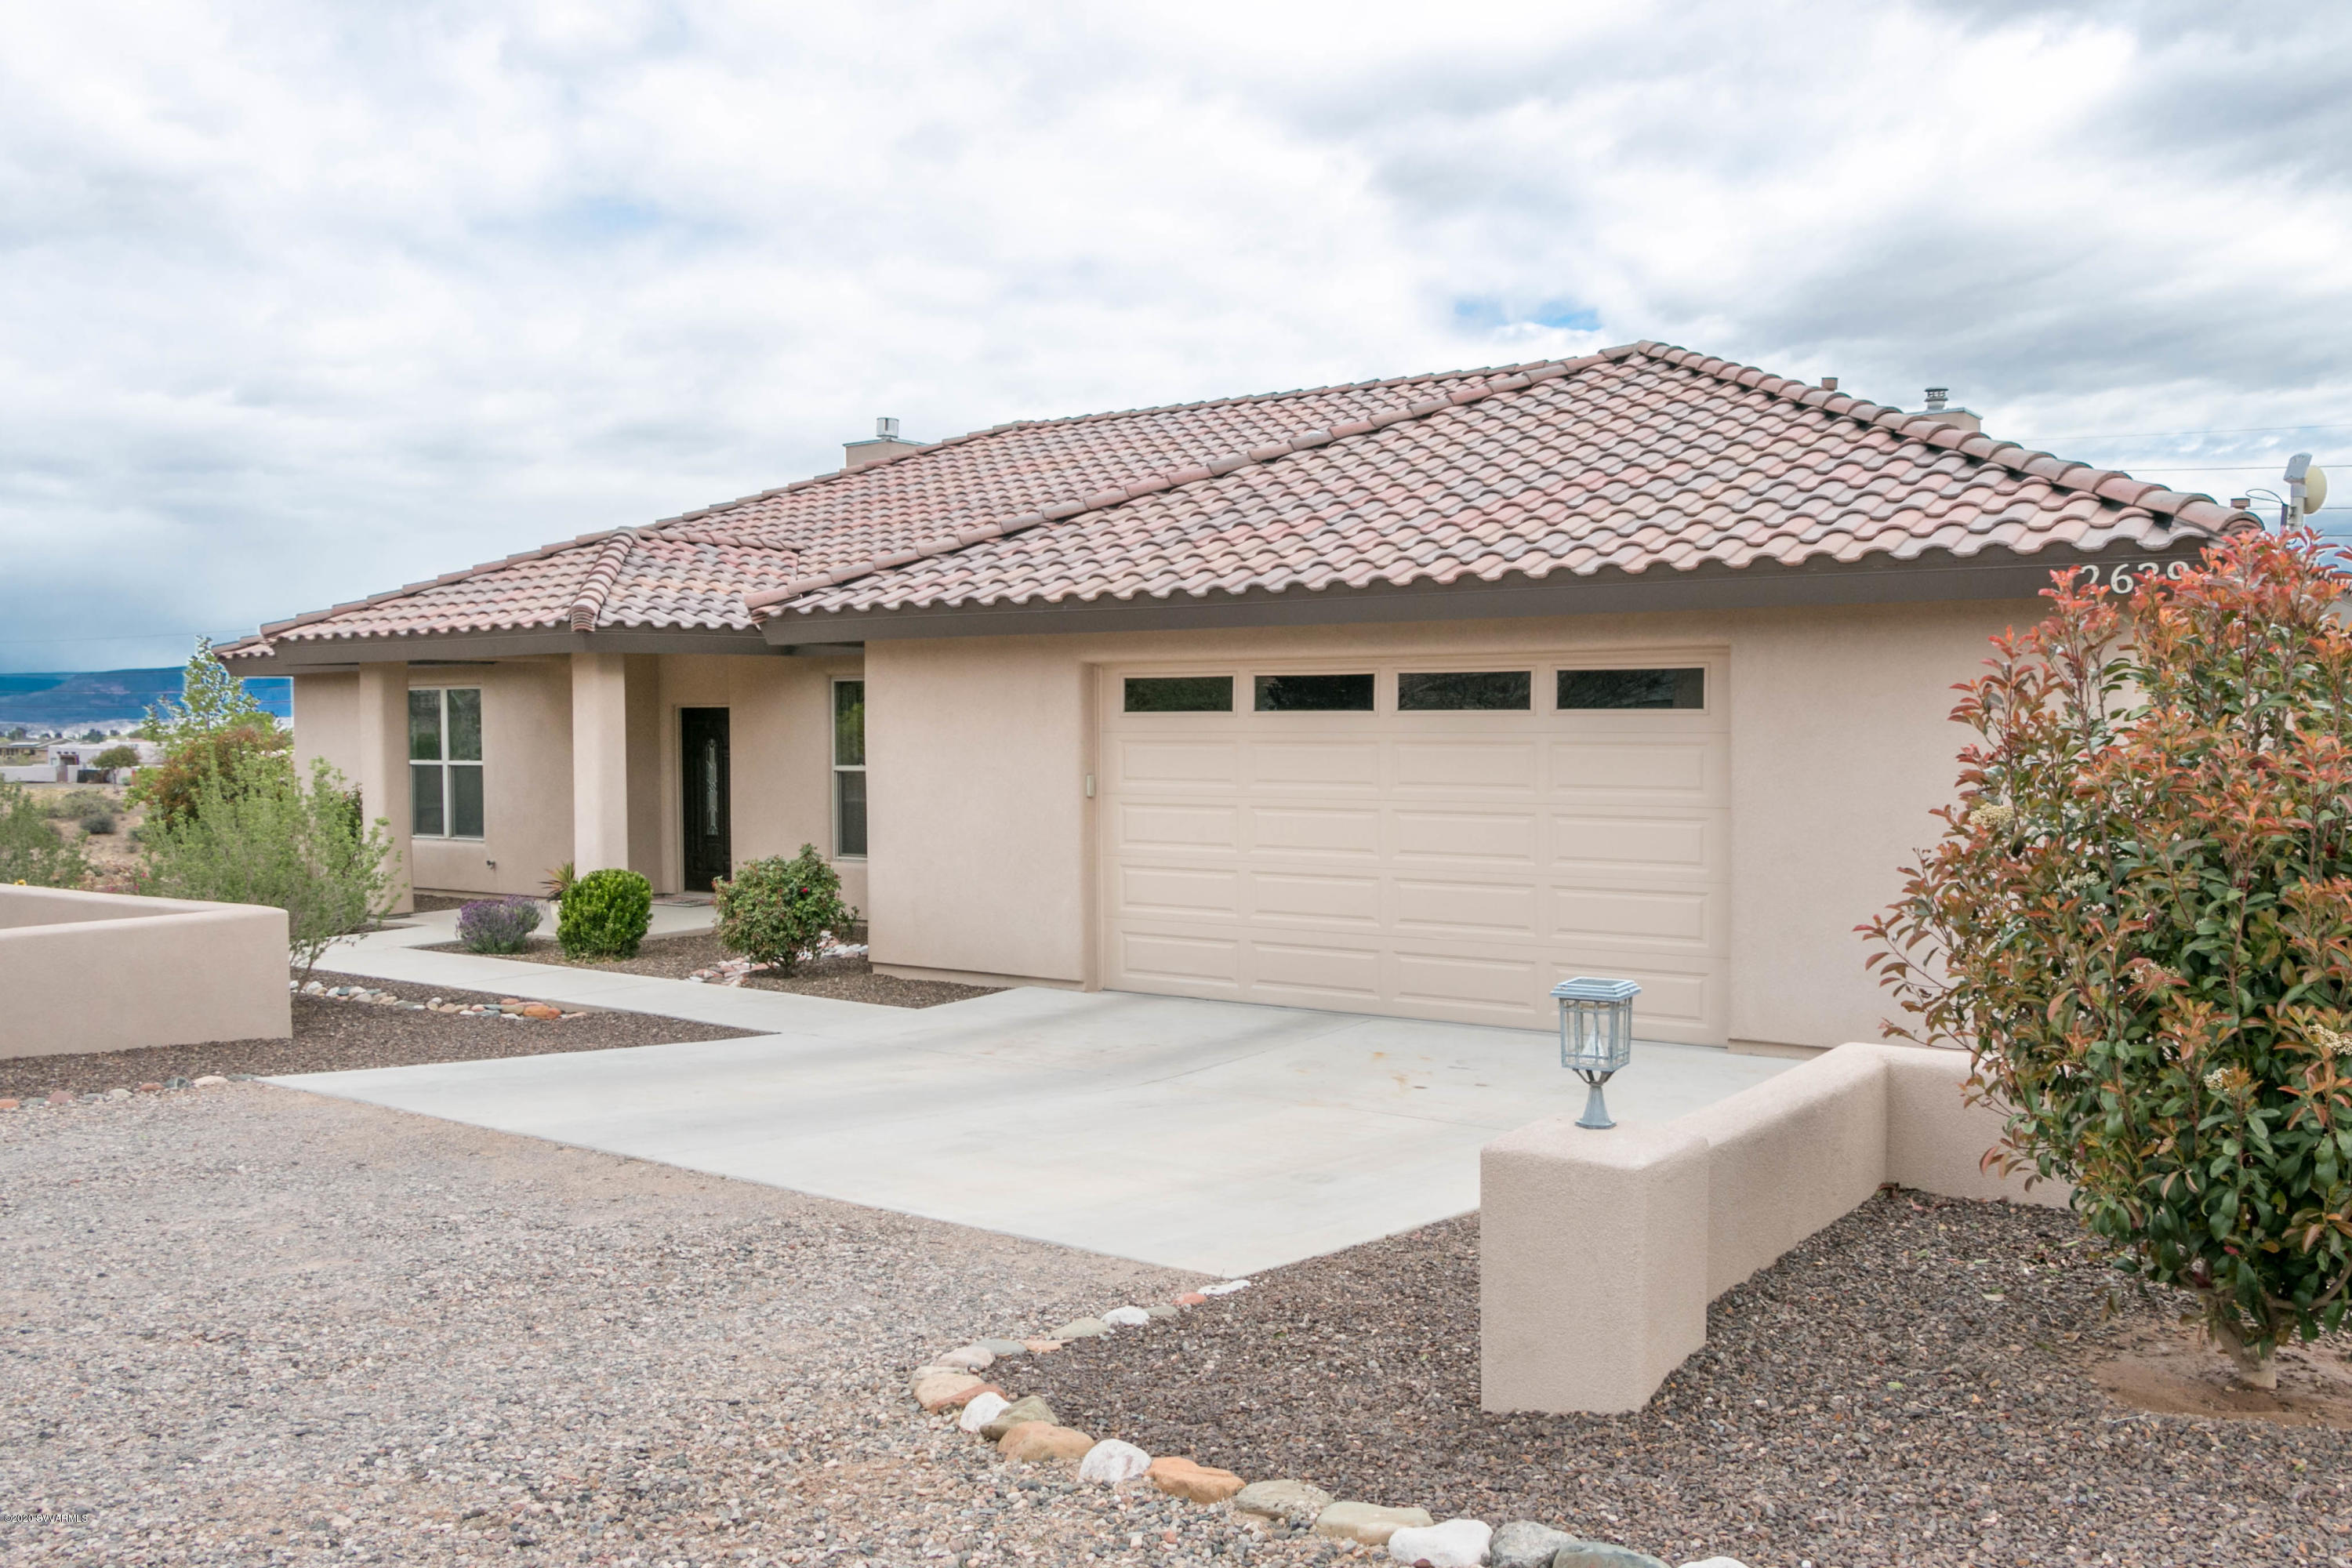 2639 S Teresa Lane Cottonwood, AZ 86326